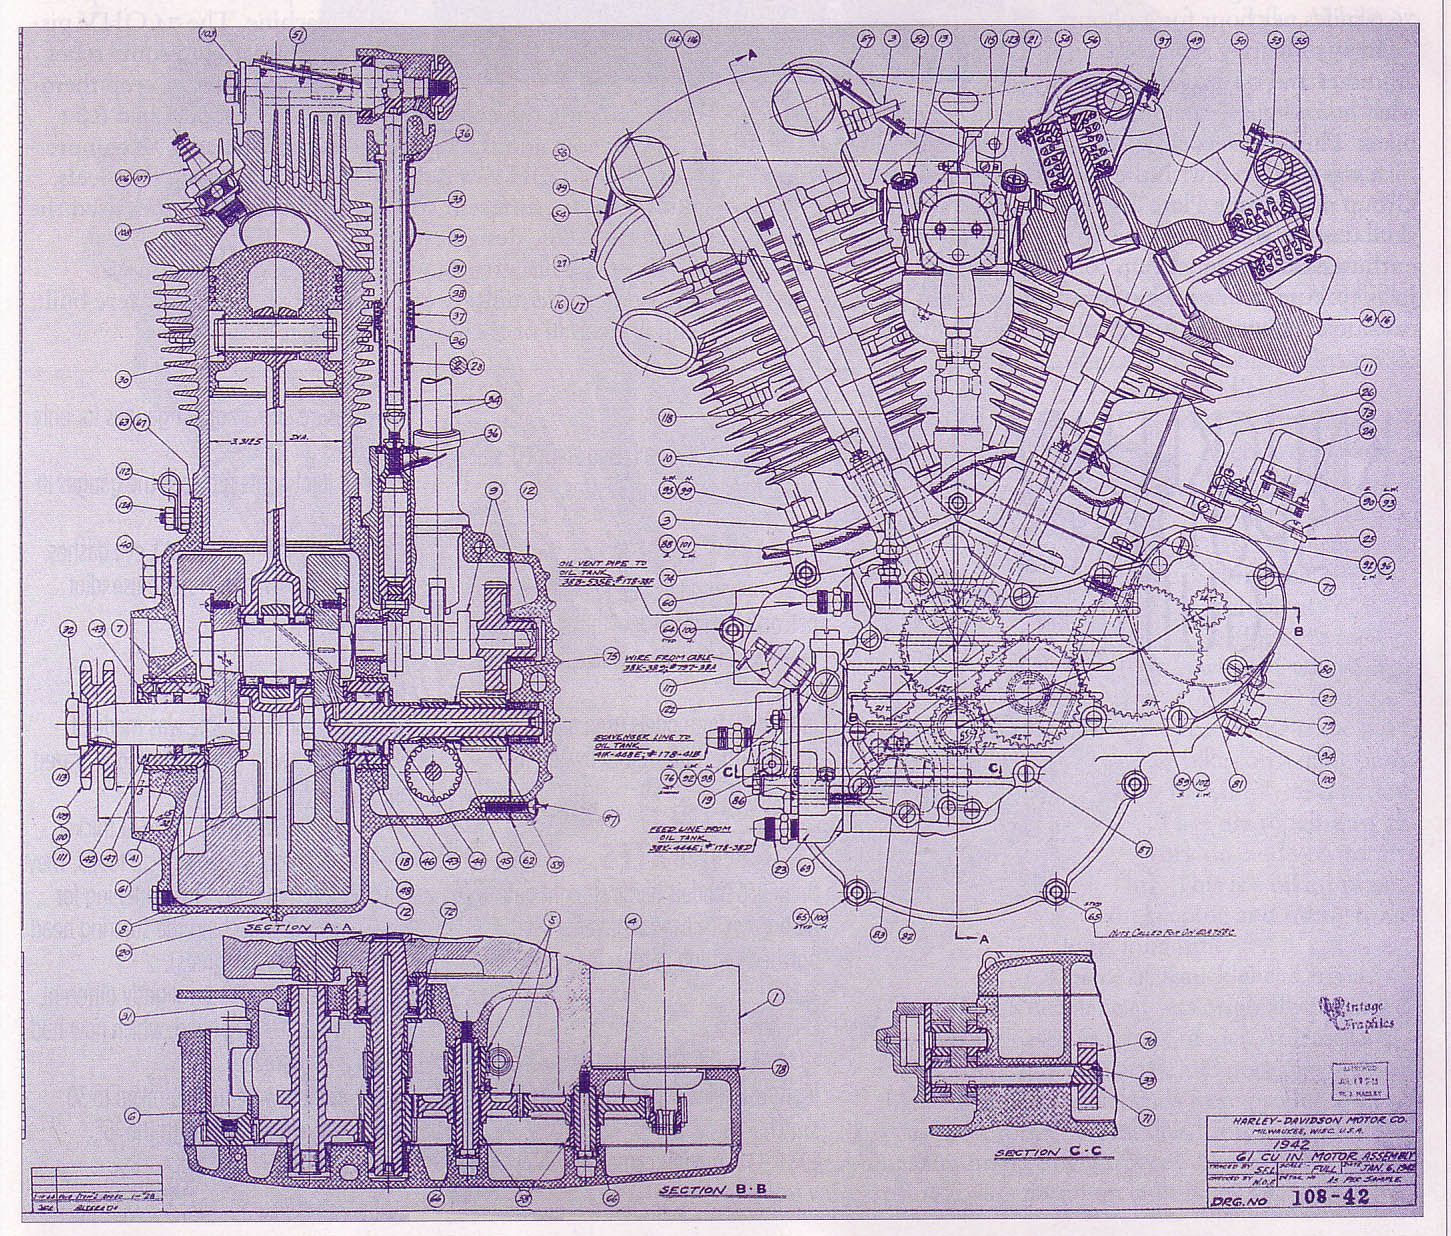 medium resolution of harley davidson blueprints google search white motorcycle motorcycle racers motorcycle engine v